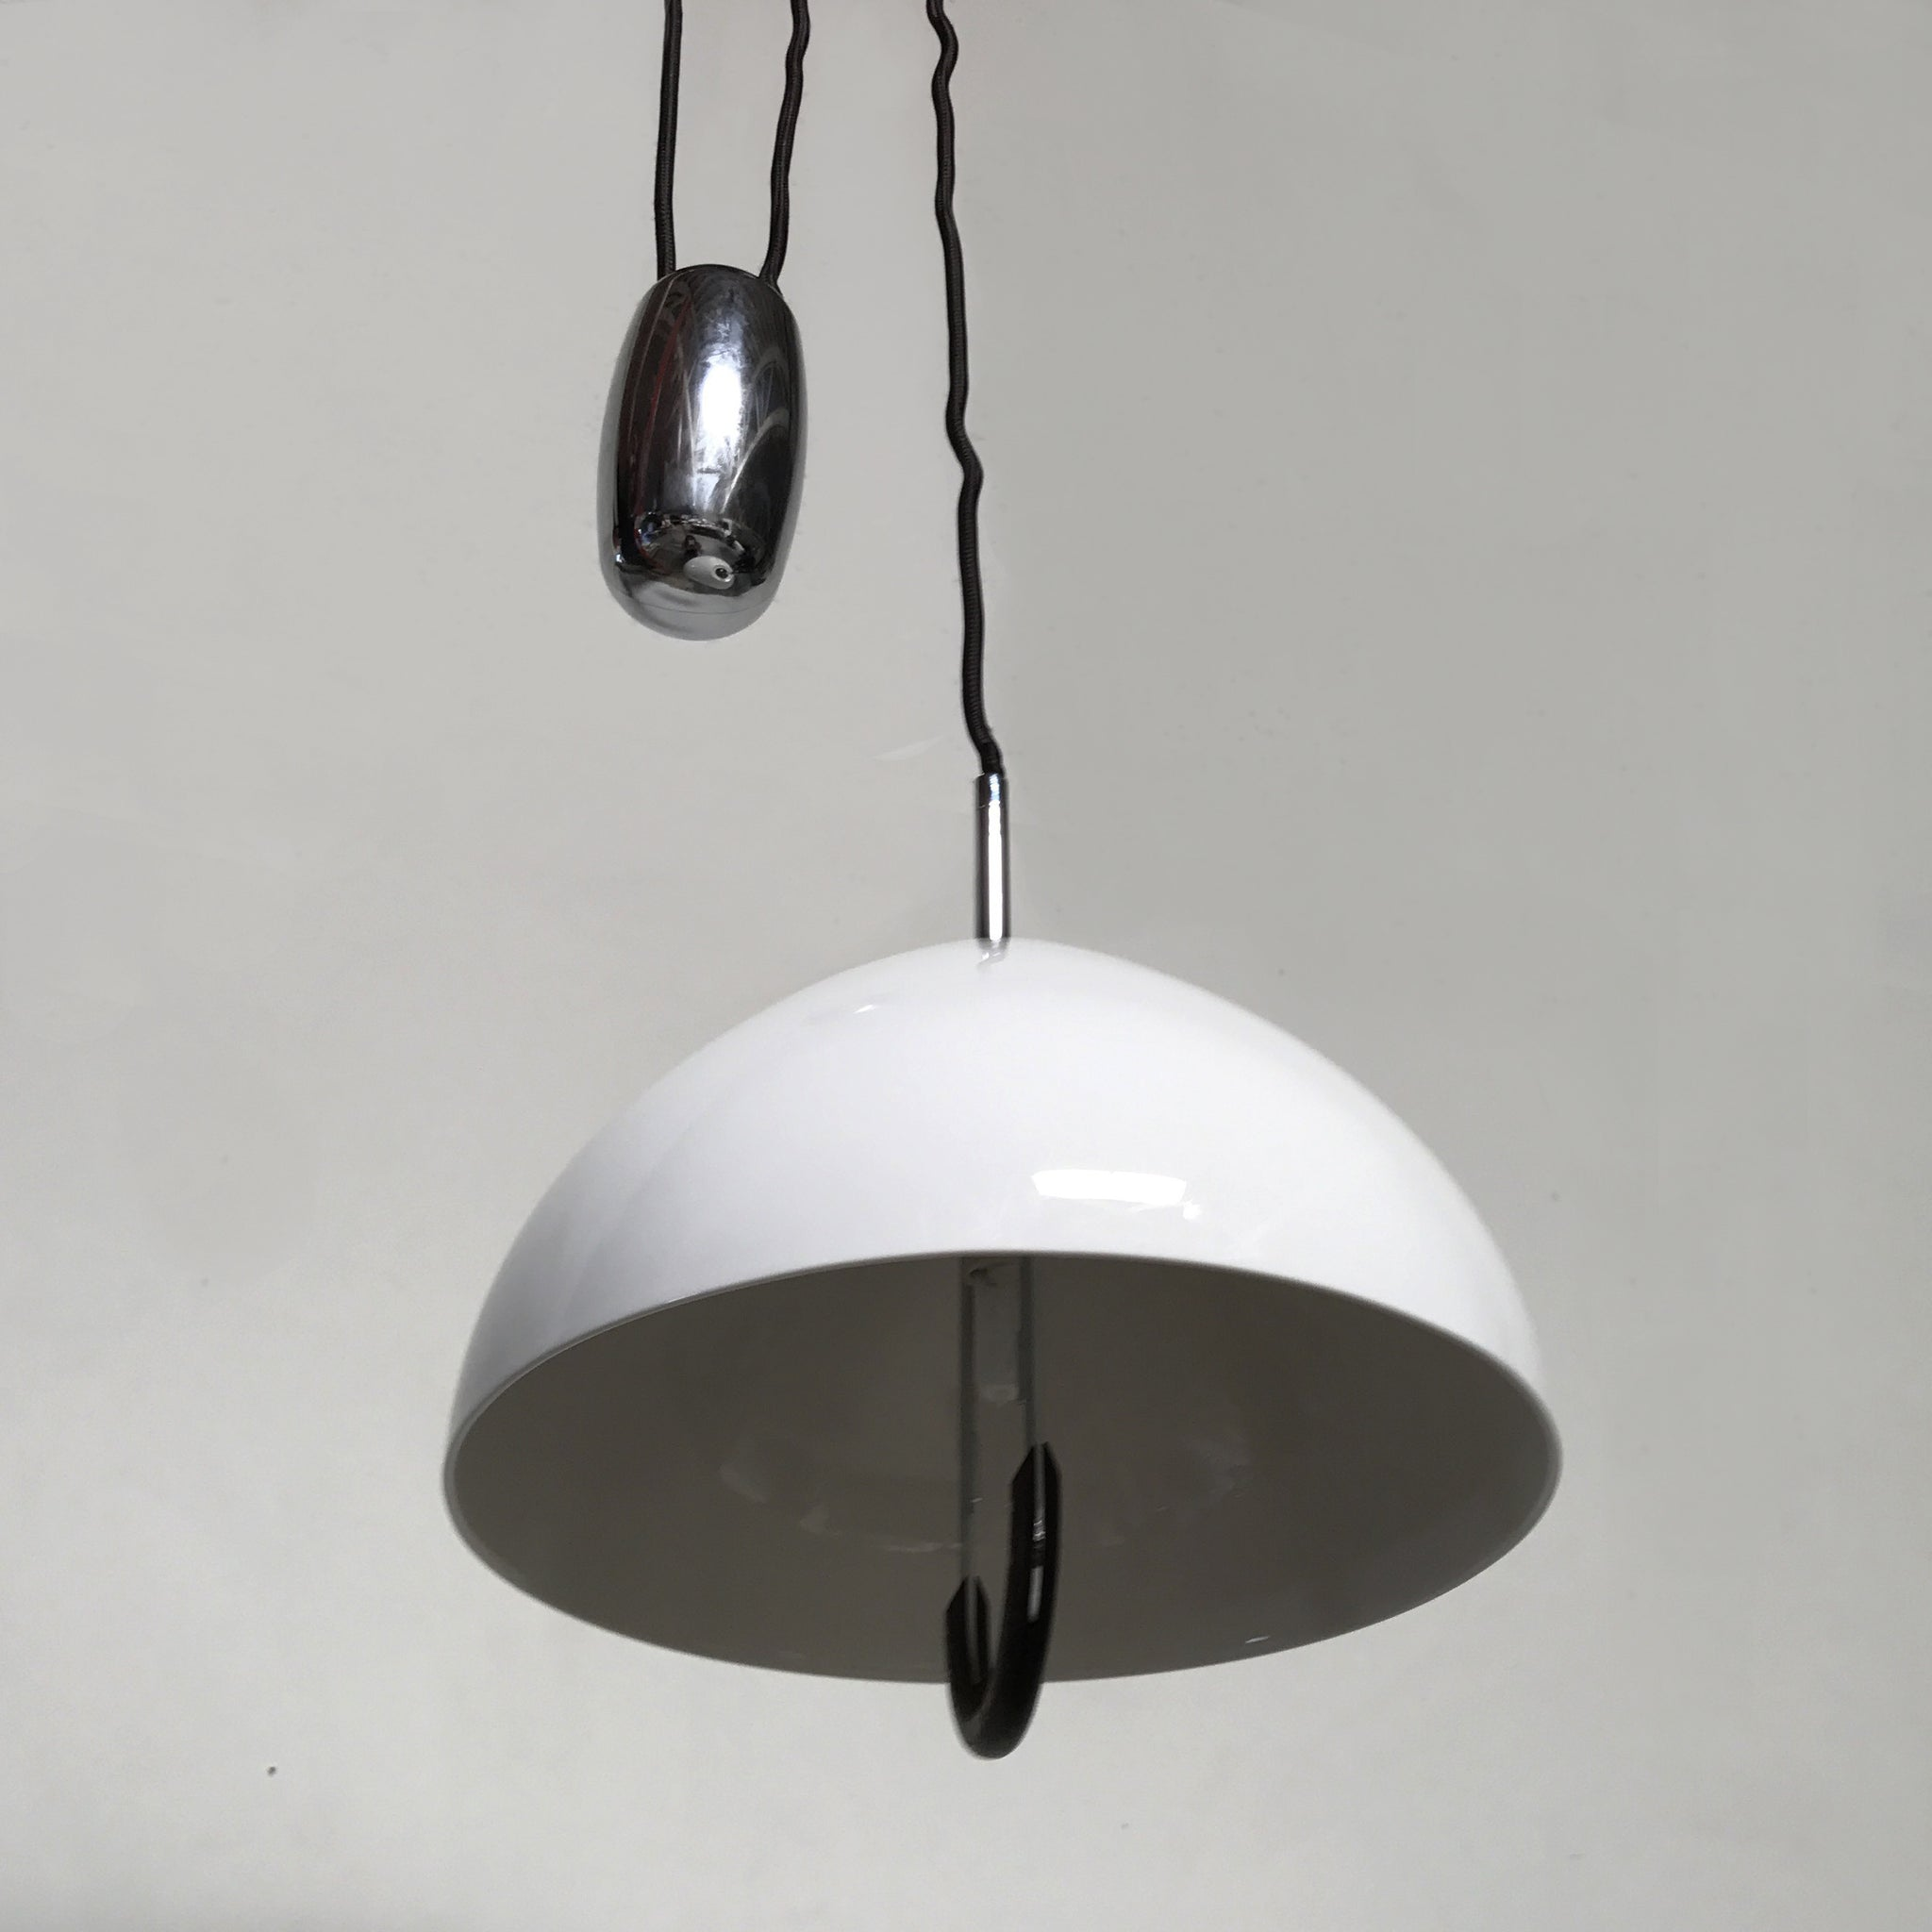 Tobias Grau tobias grau white ceramic hanging ceiling light modern resale